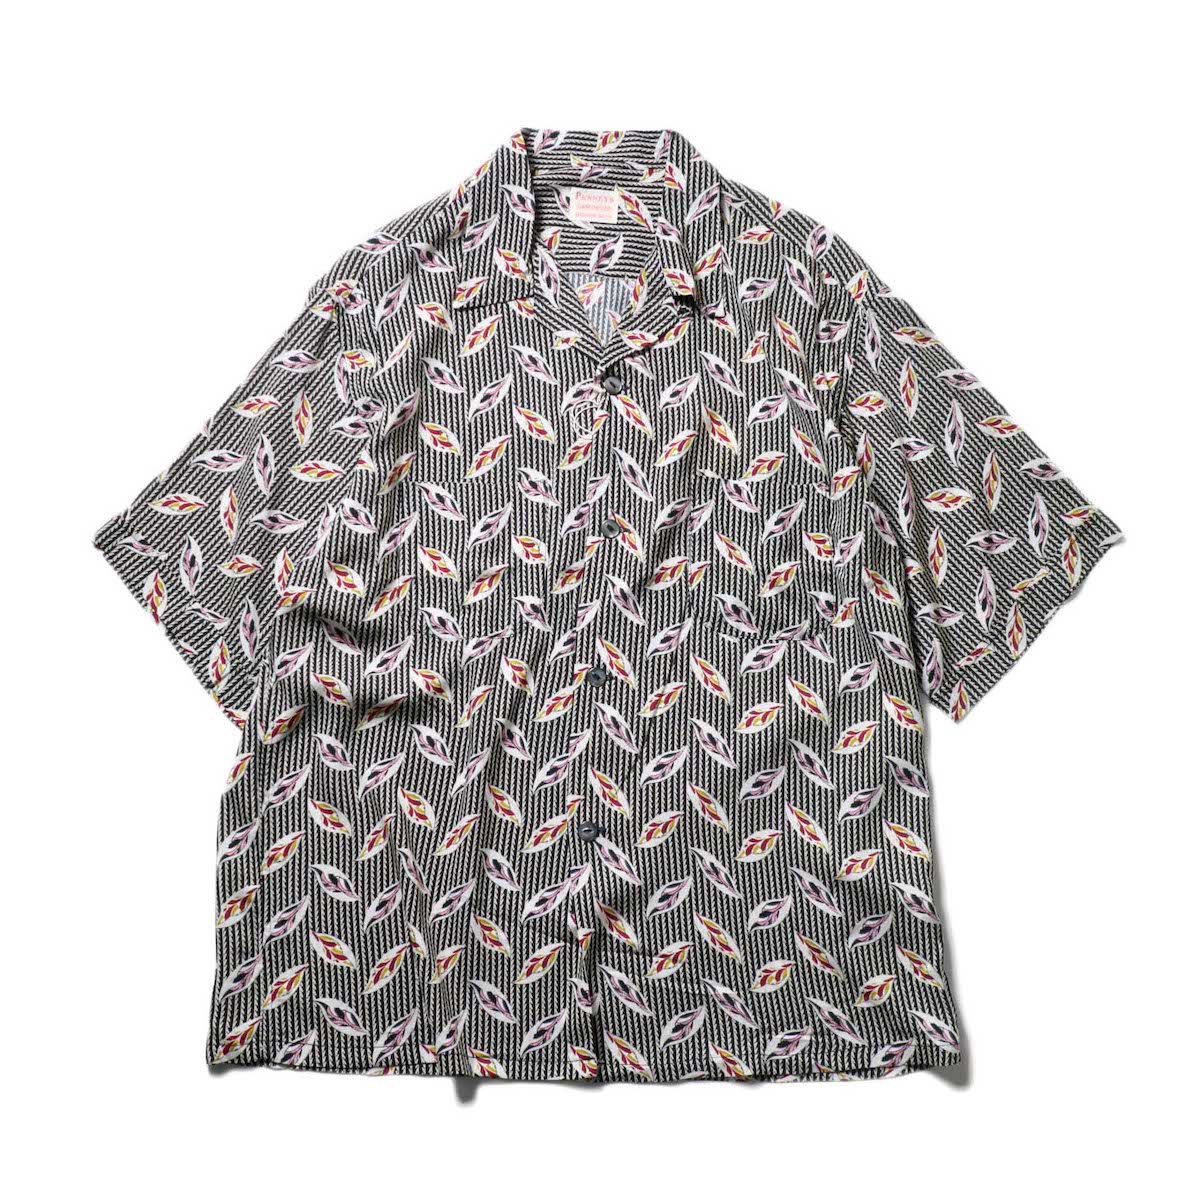 PENNEY'S / LEAF PRINTED W-P SS SHIRTS / (Black)